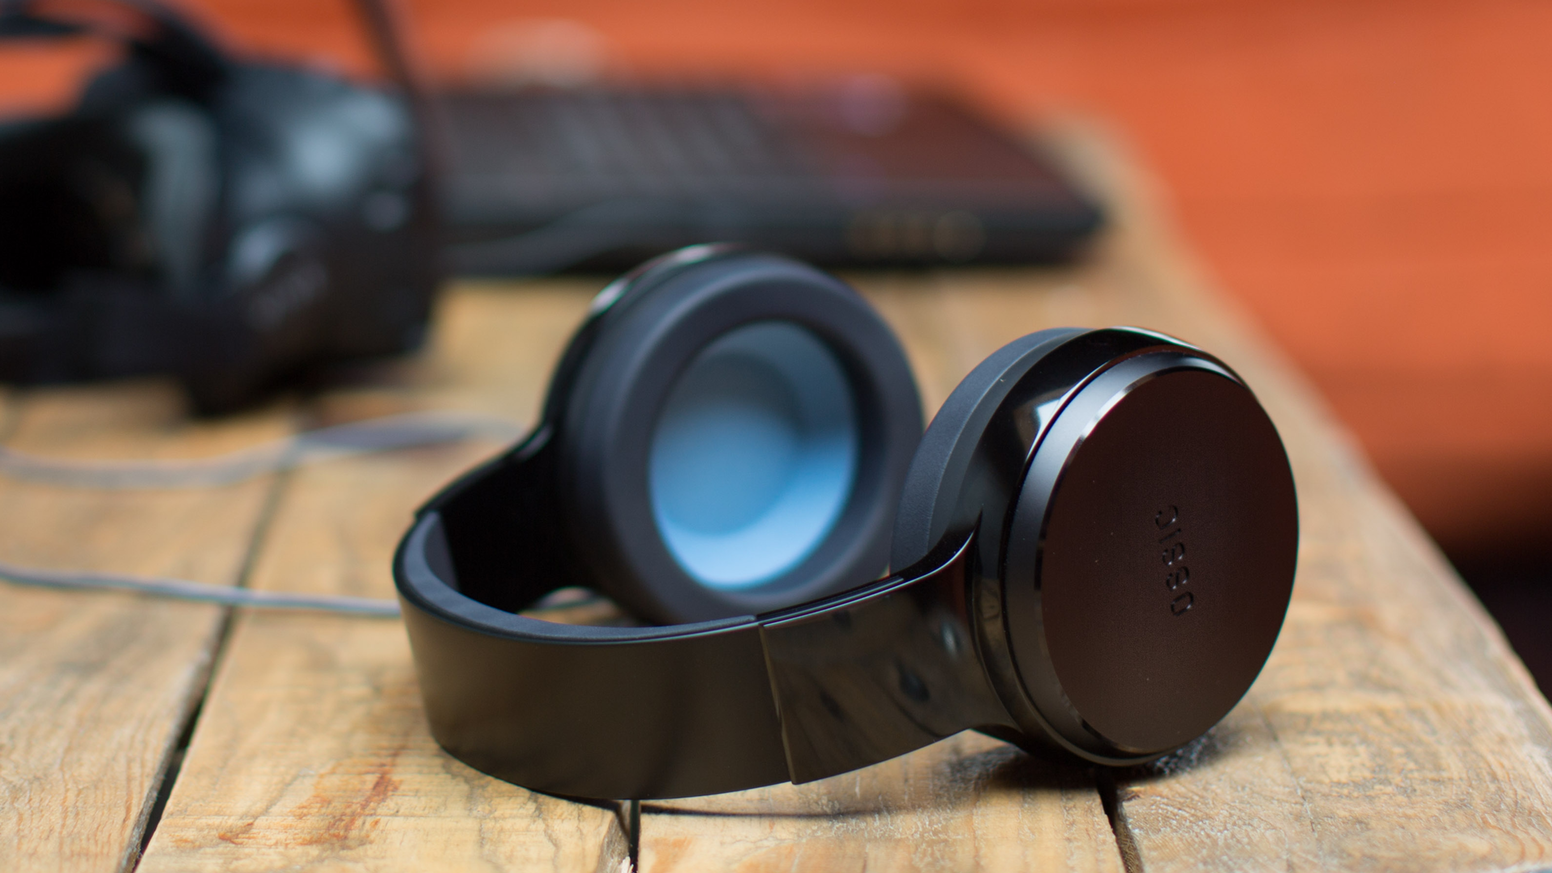 OSSIC X is the world's first headphone that instantly calibrates to your anatomy for the most accurate and immersive 3D audio.